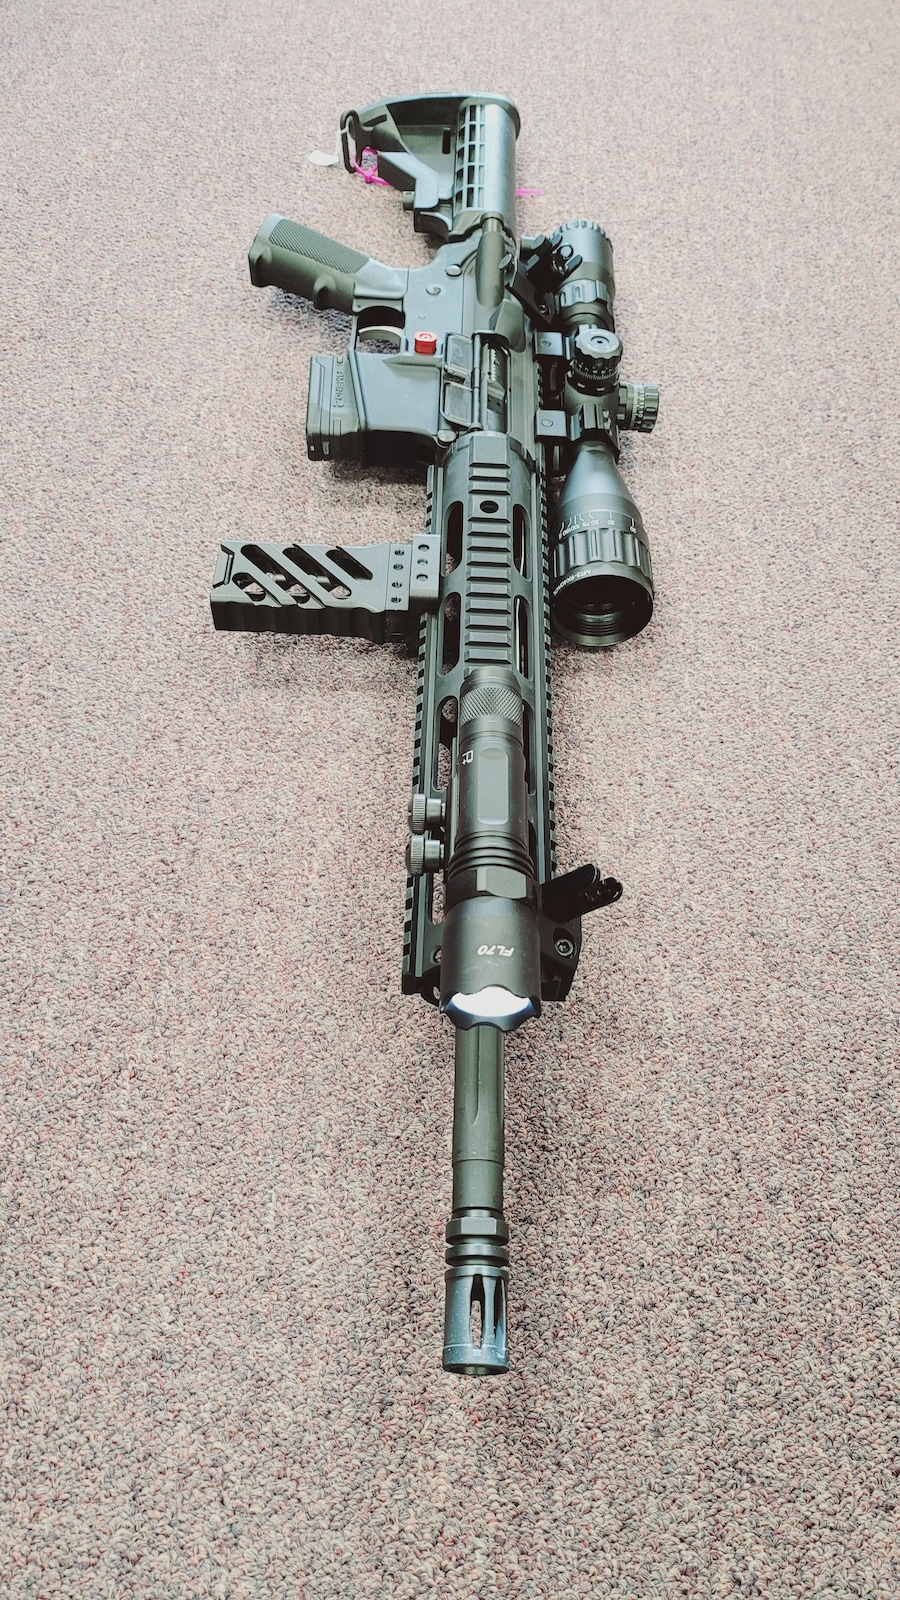 ANDERSON MFG. Special Edition Fixed Magazine AM-15 with flashlight foregrip & Red Dot sight package